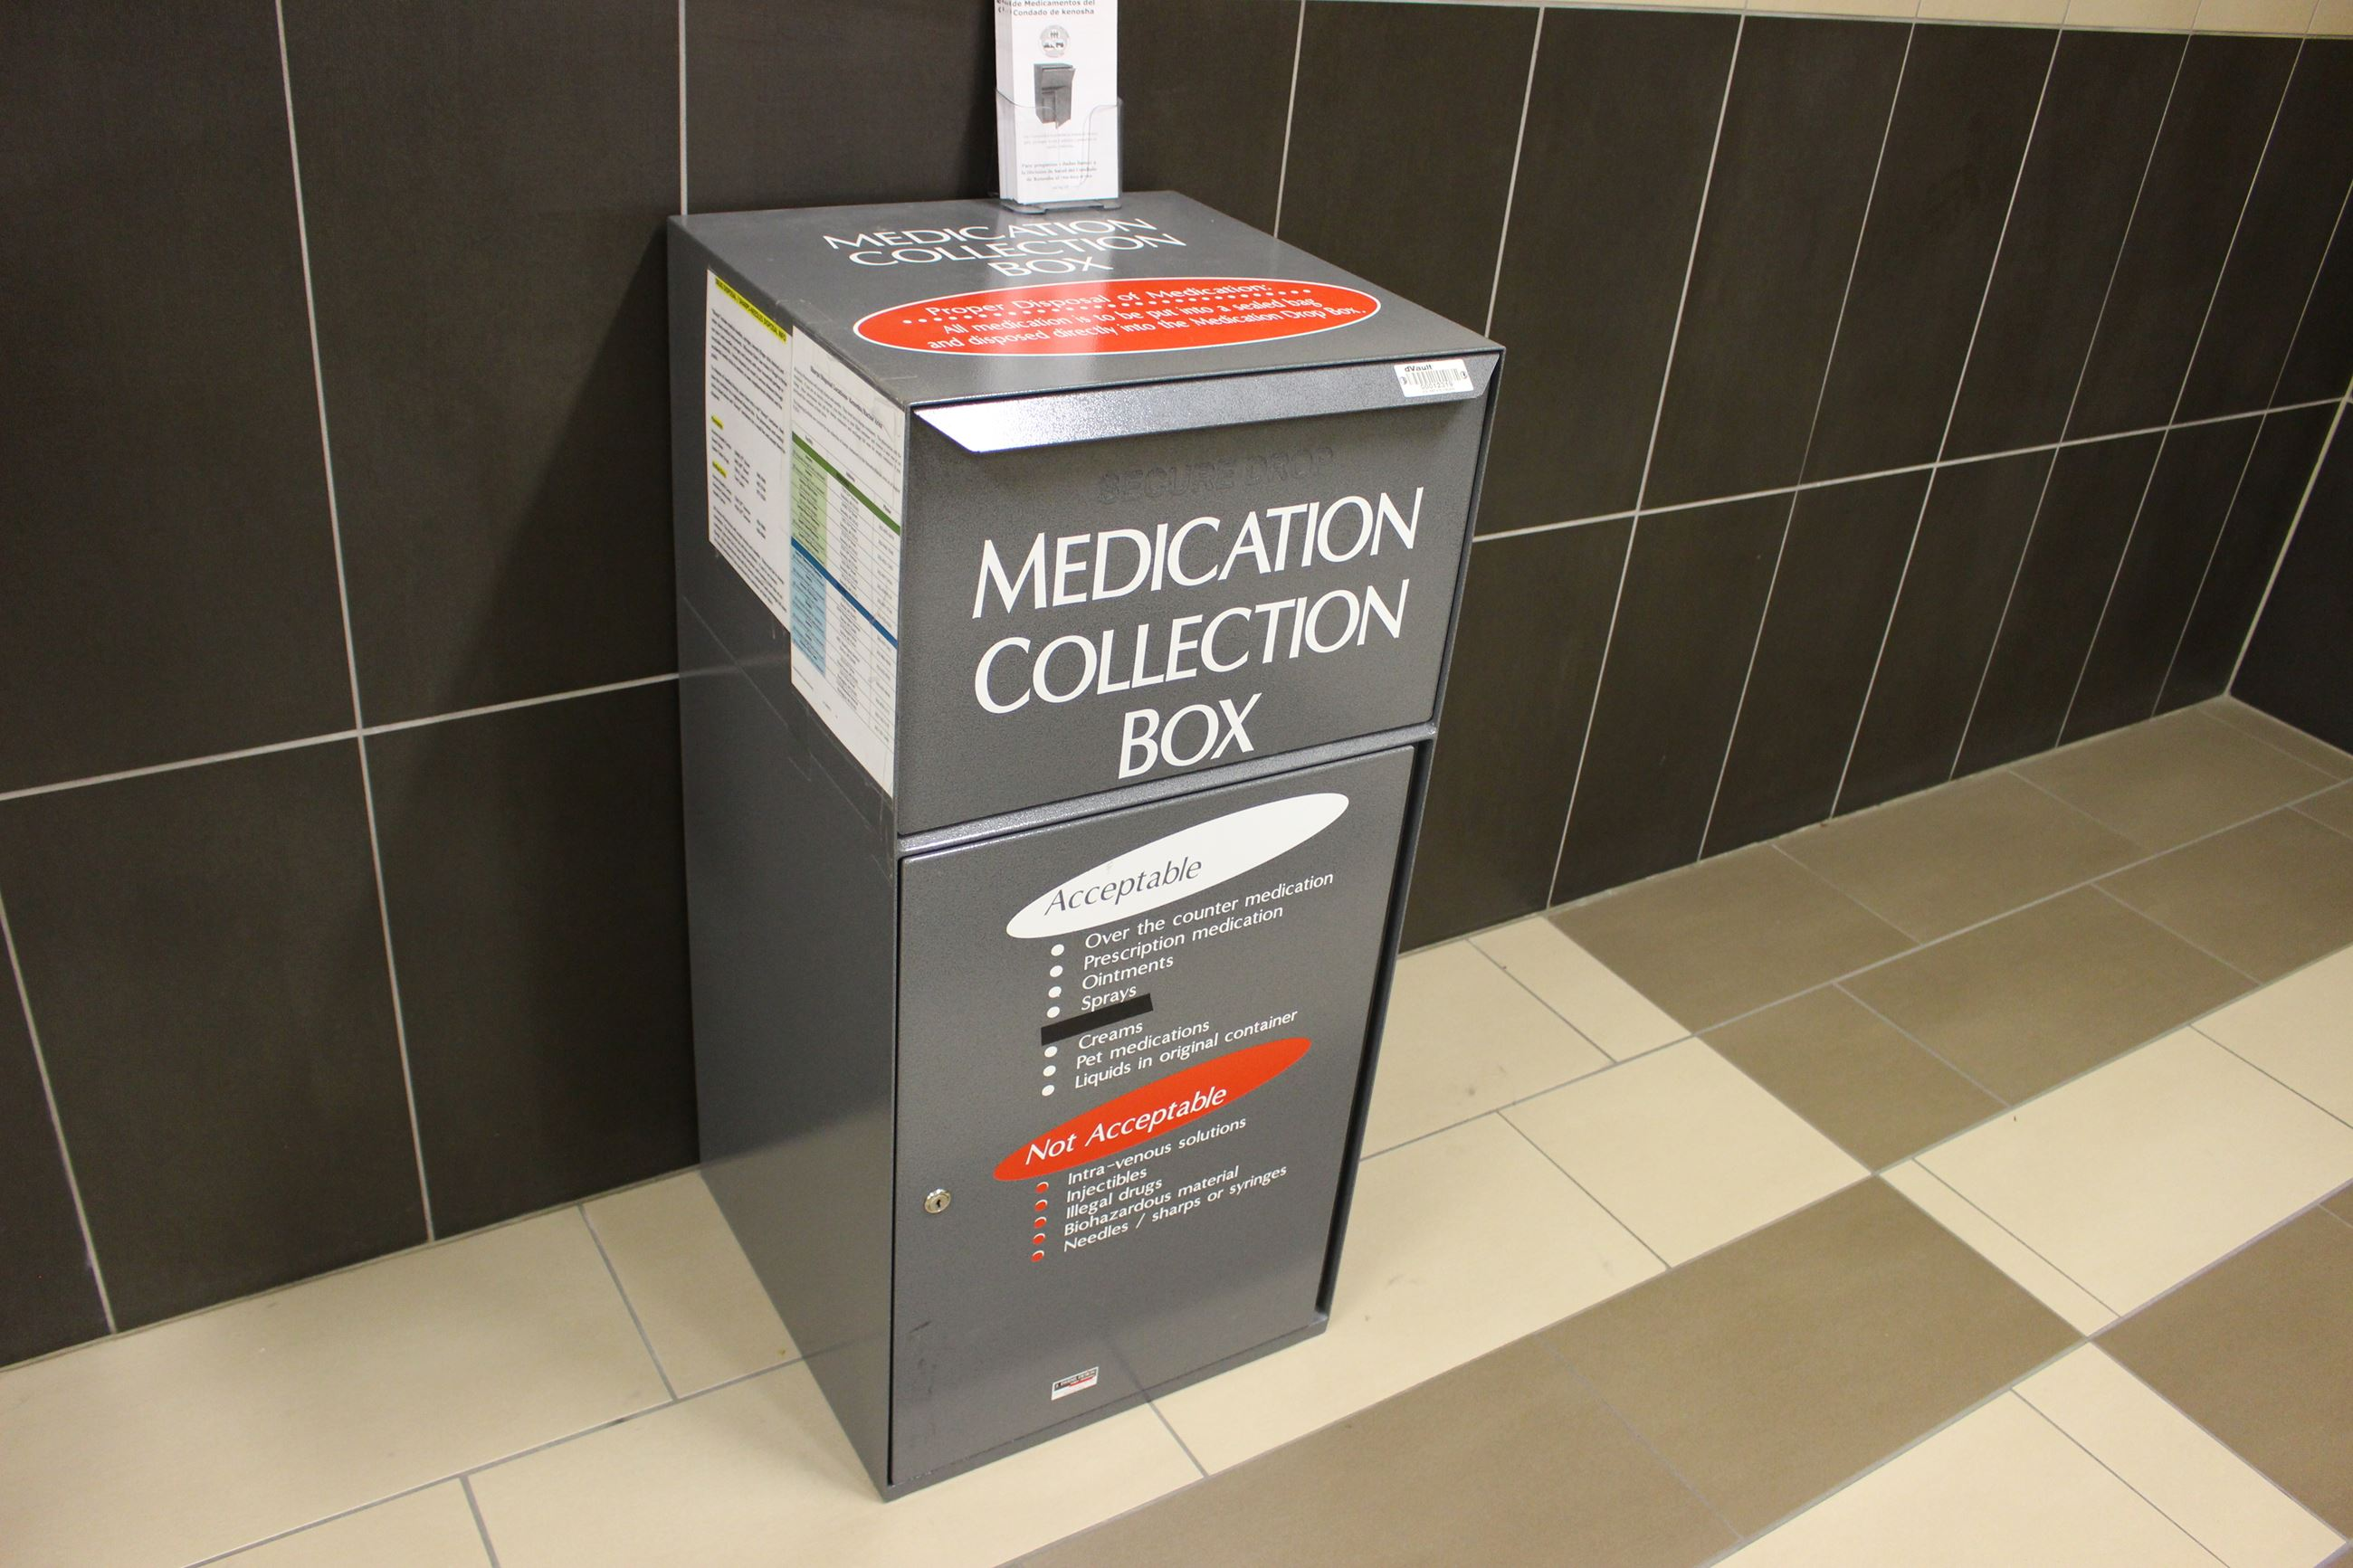 Drug collection box